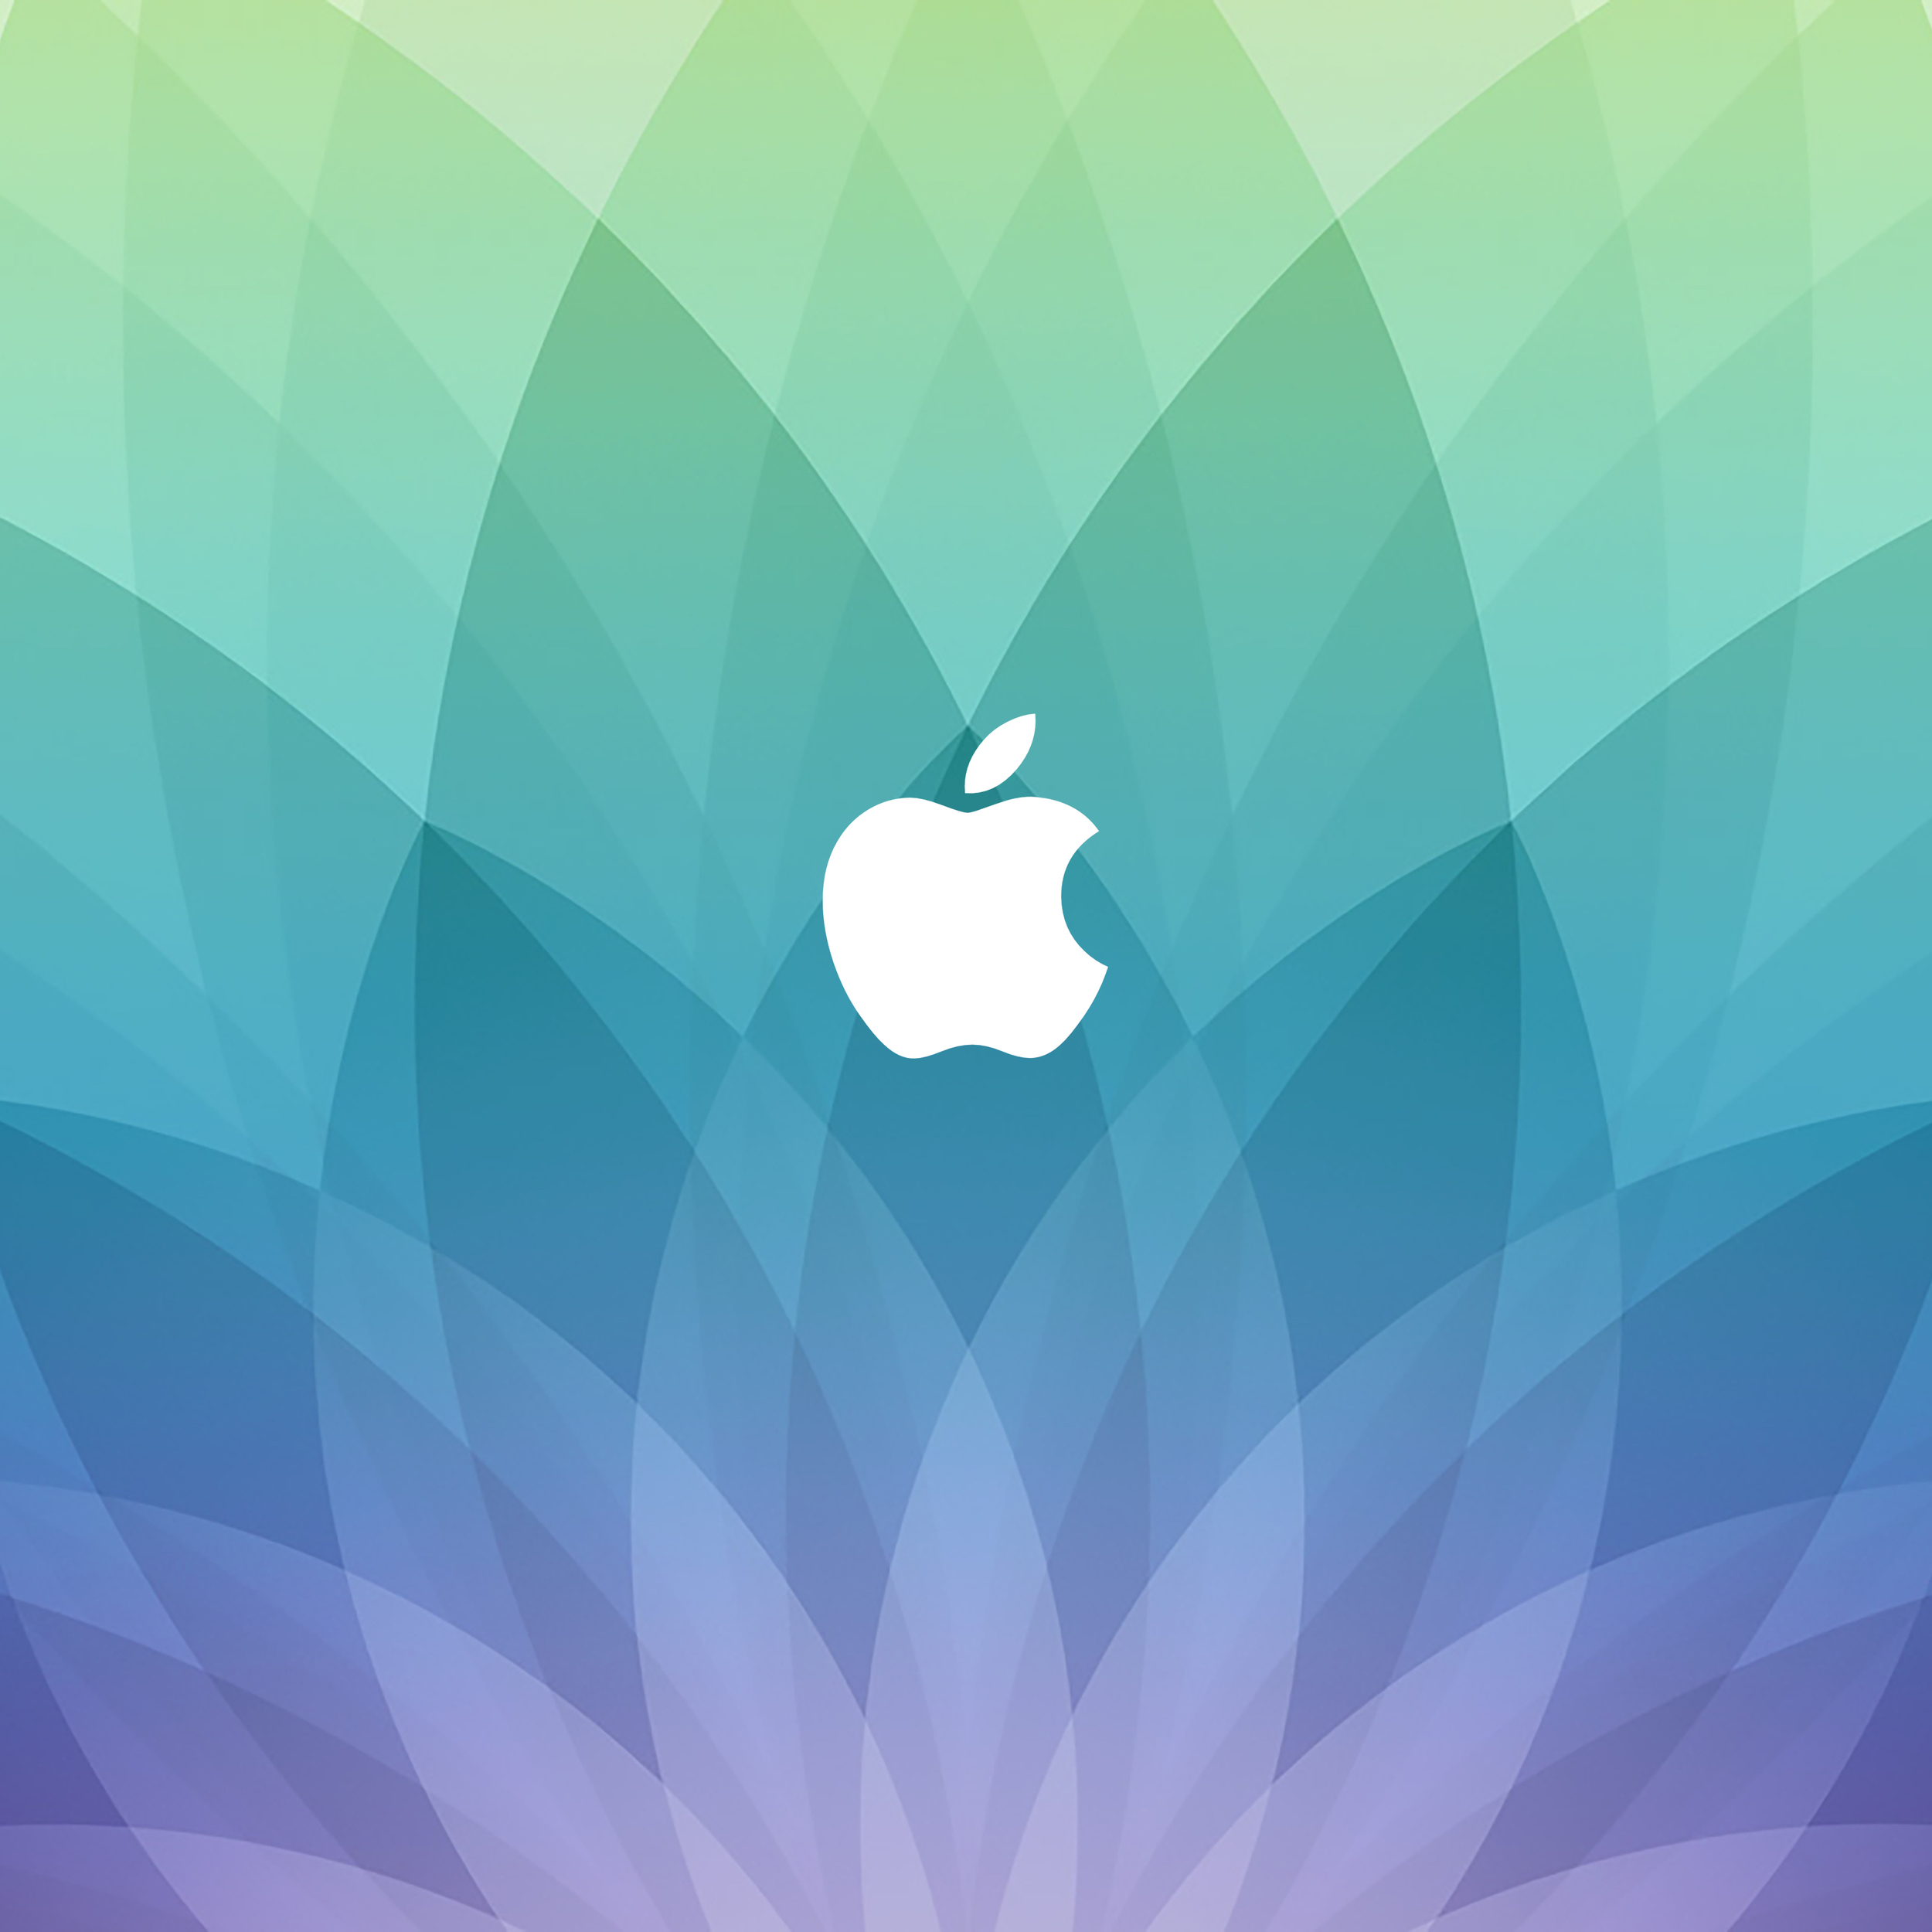 Image courtesy of Apple, Inc., All rights reserved.